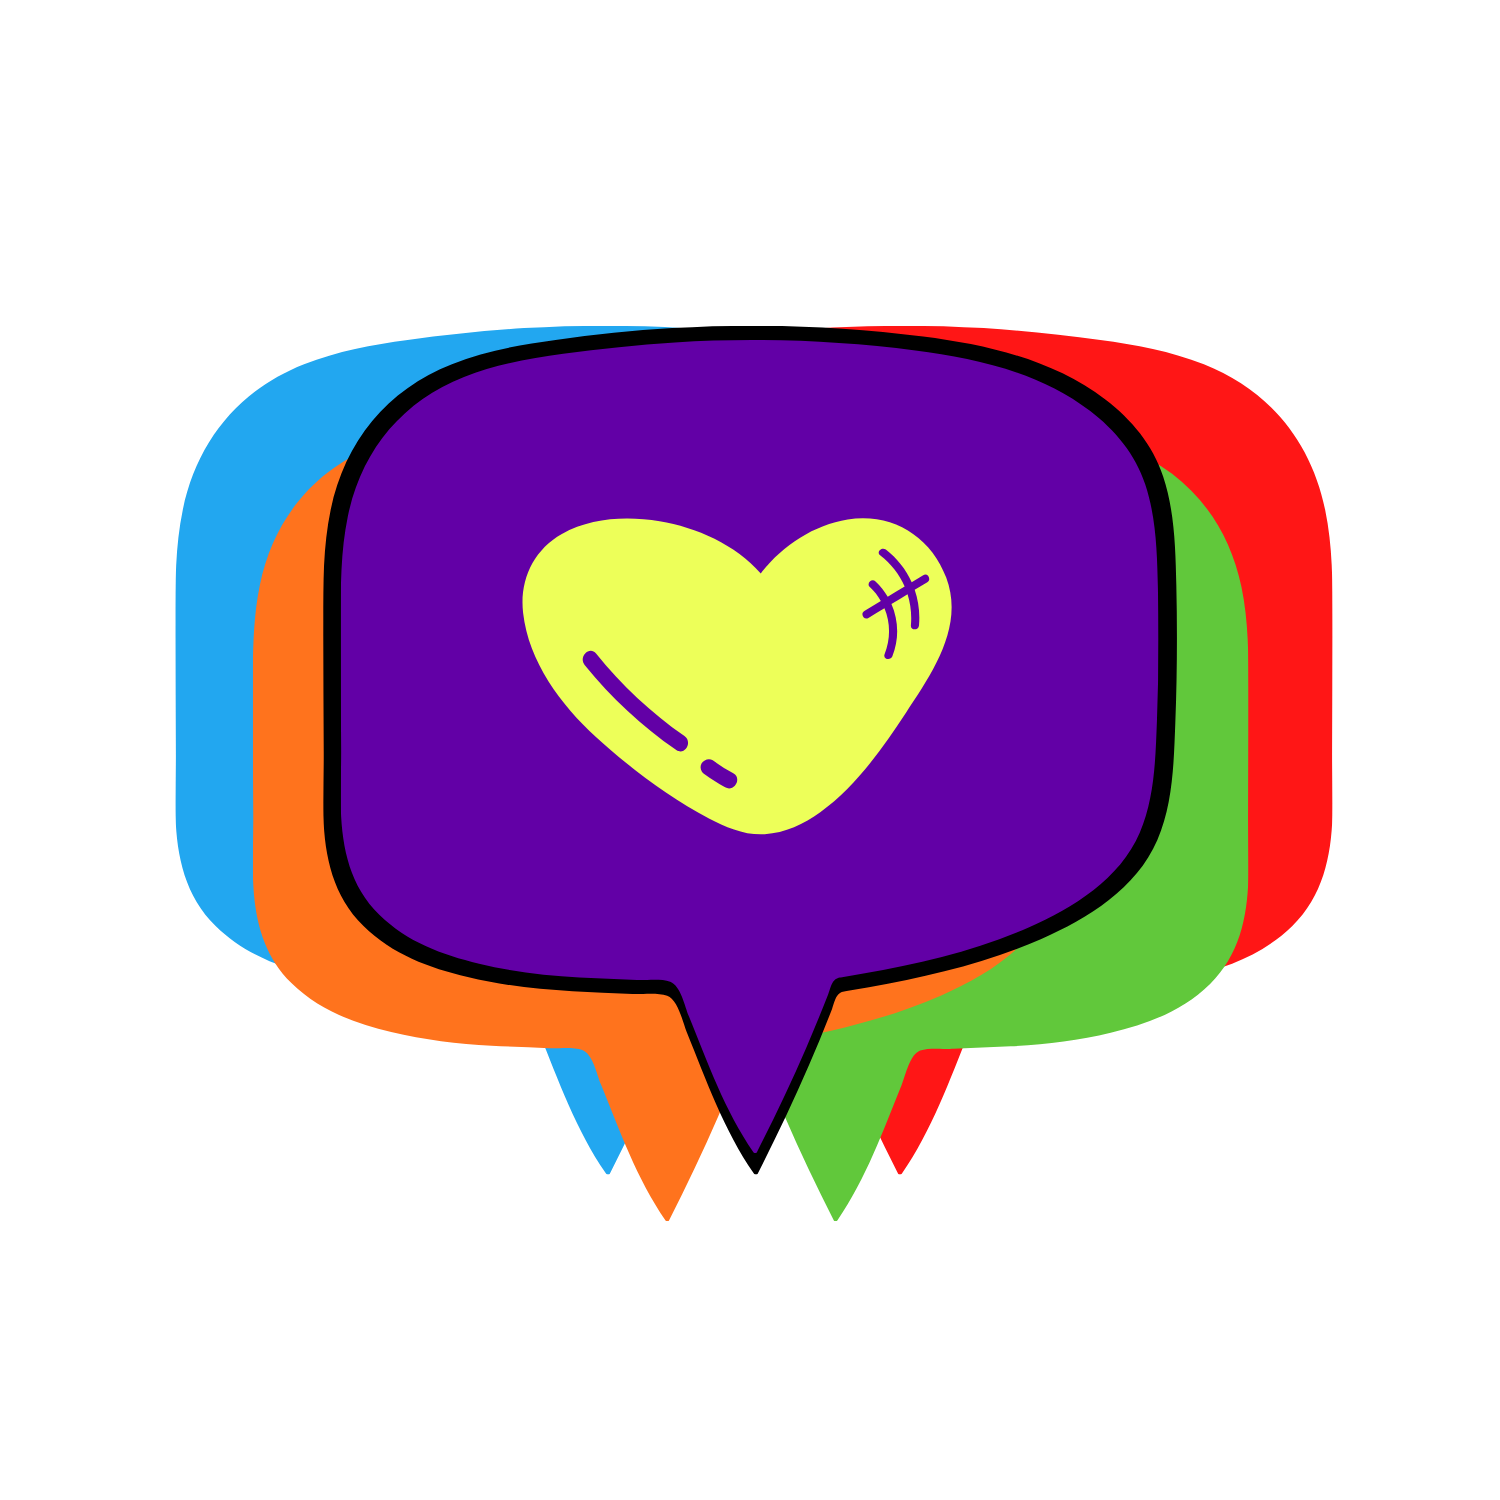 Welcome to the Community Logo